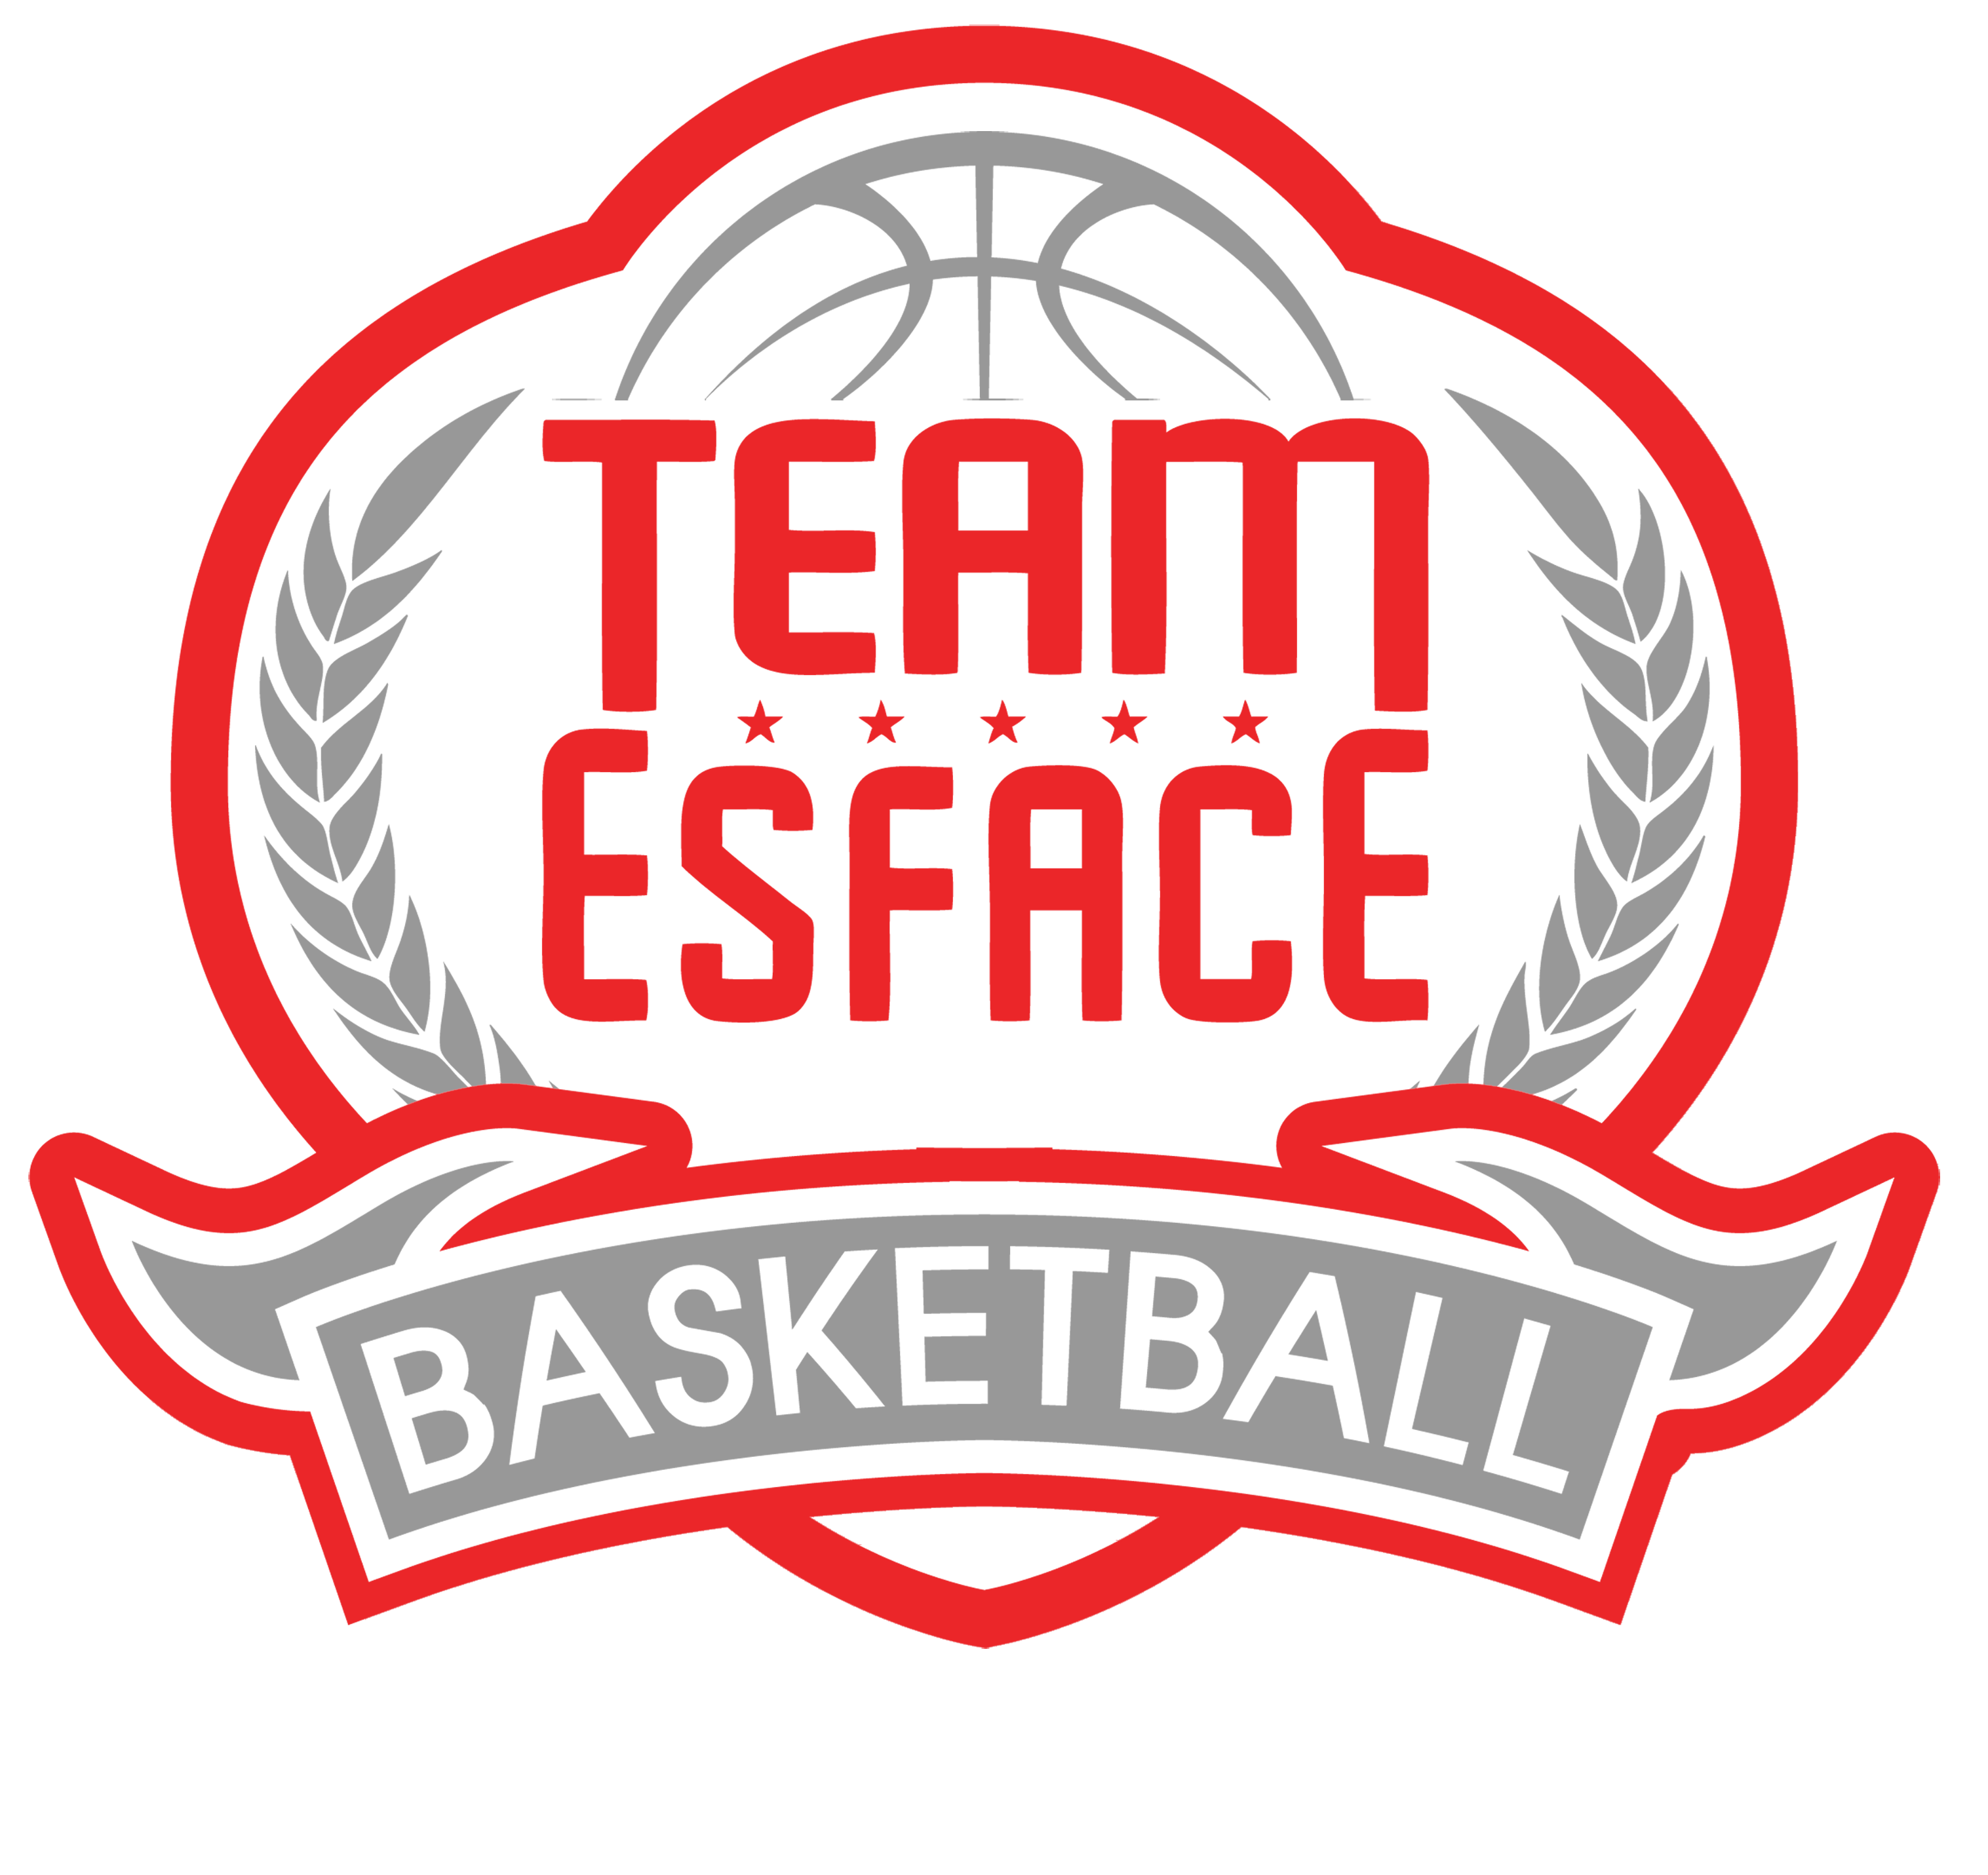 TEAM ESFACE NPO logo tri color white outline